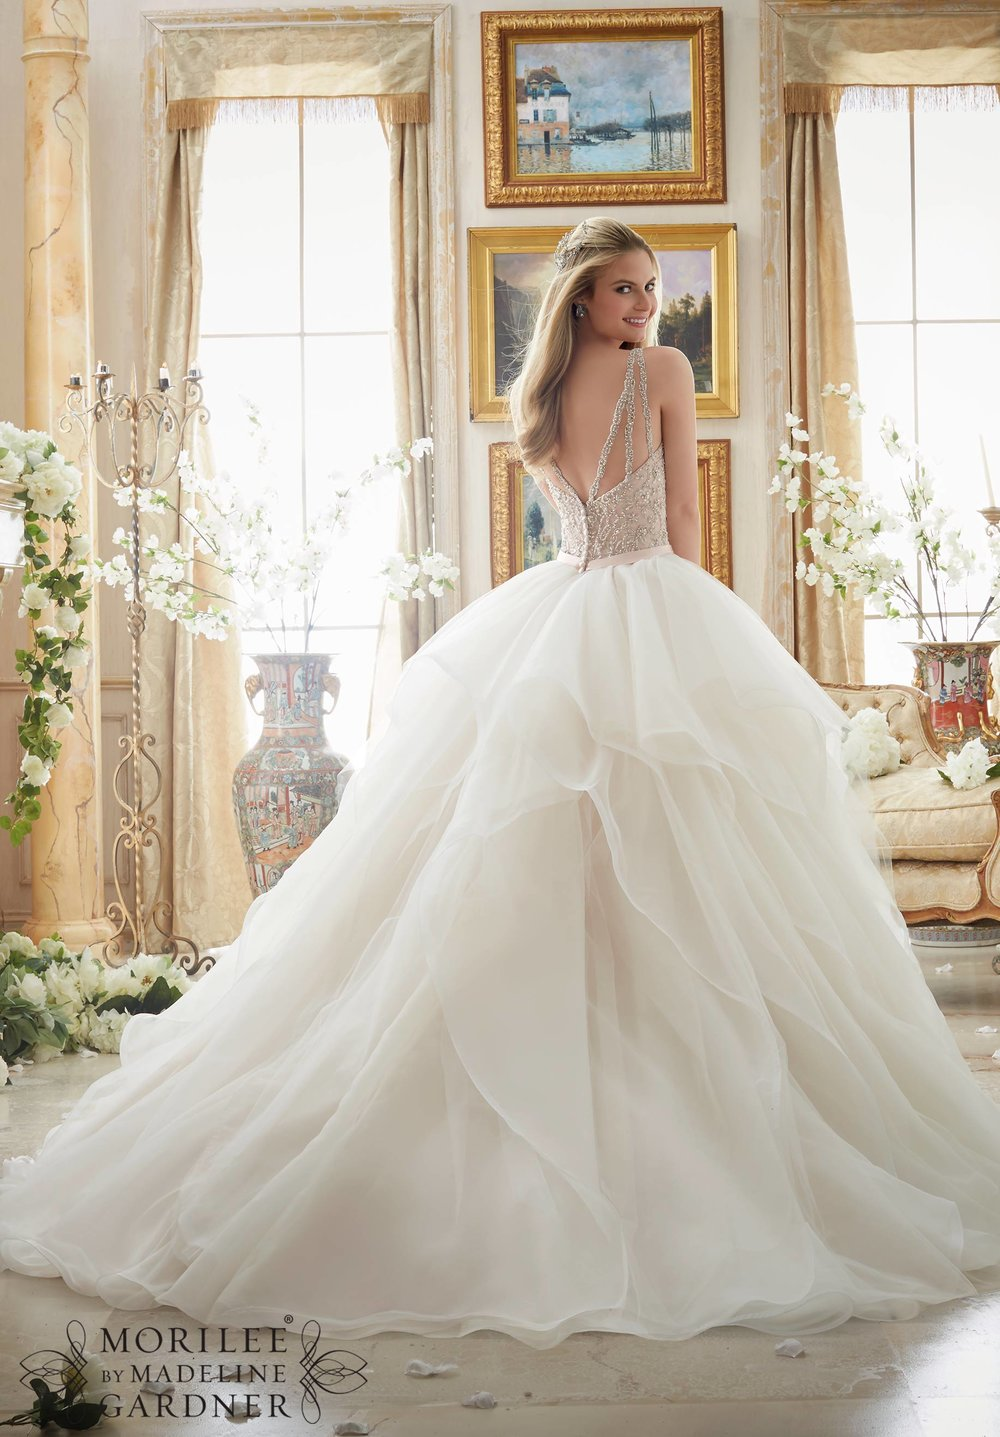 Mori Lee ballgown wedding dress with straps